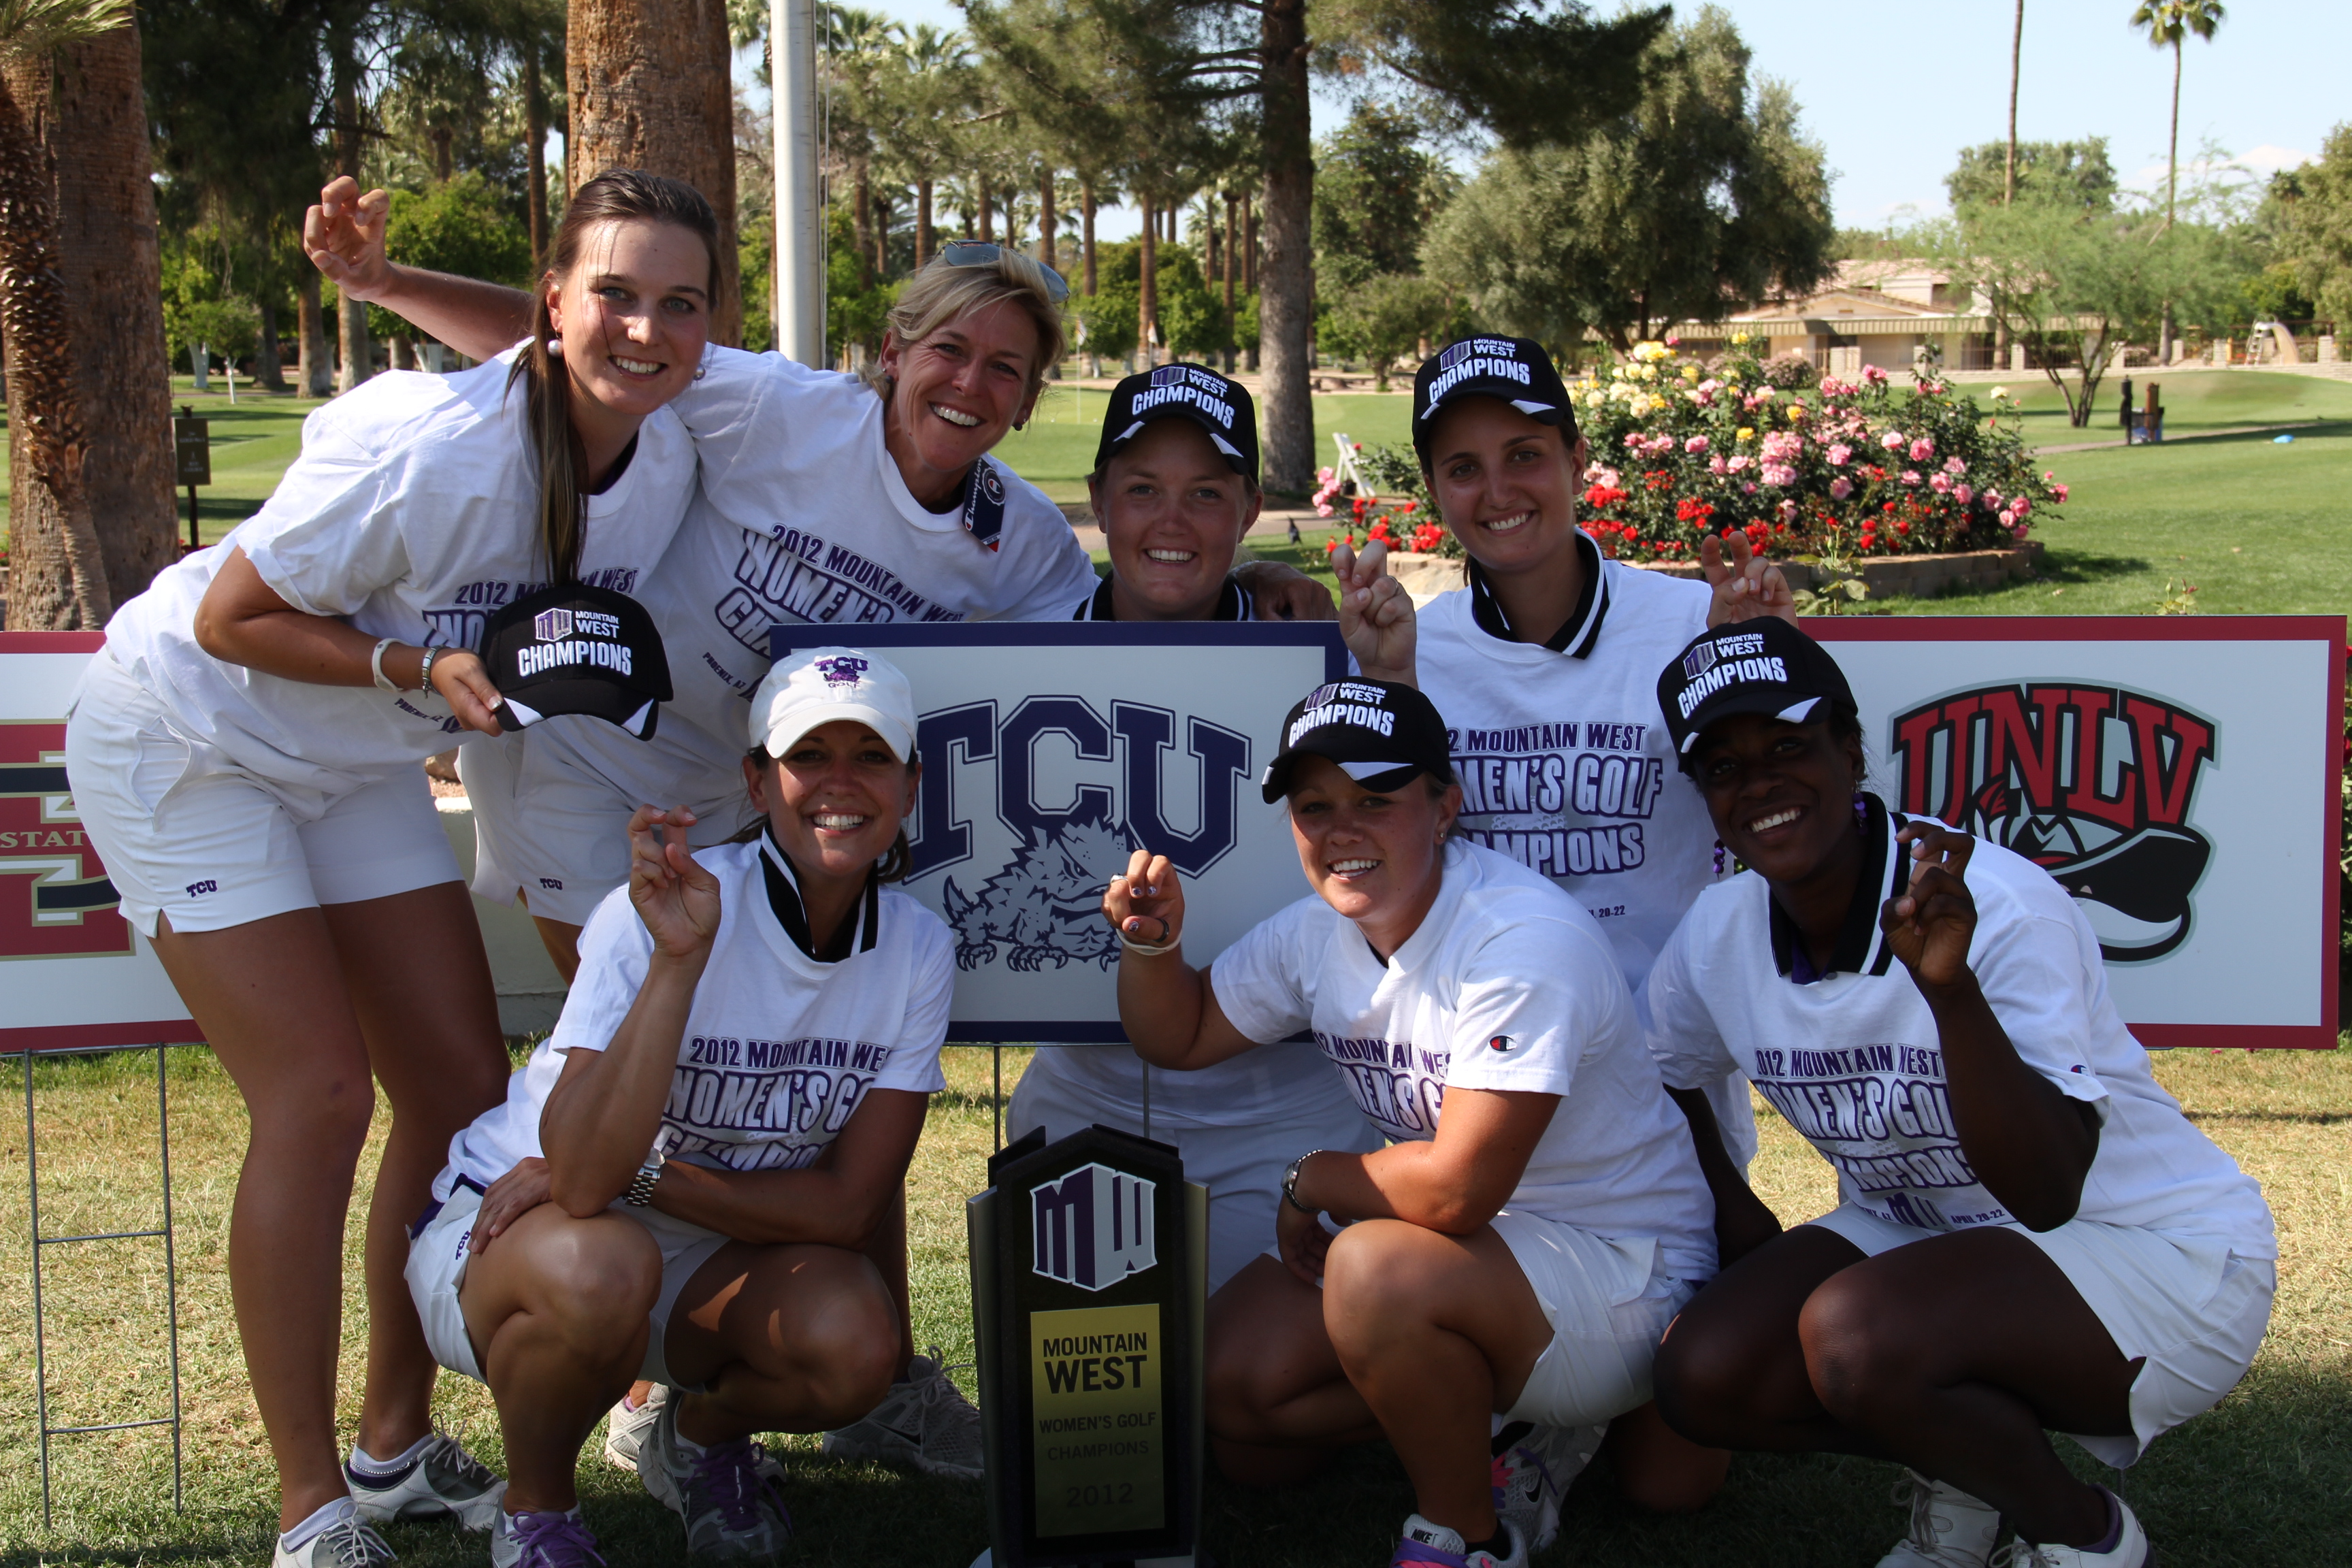 TCU after winning its second consecutive Mountain West crown.